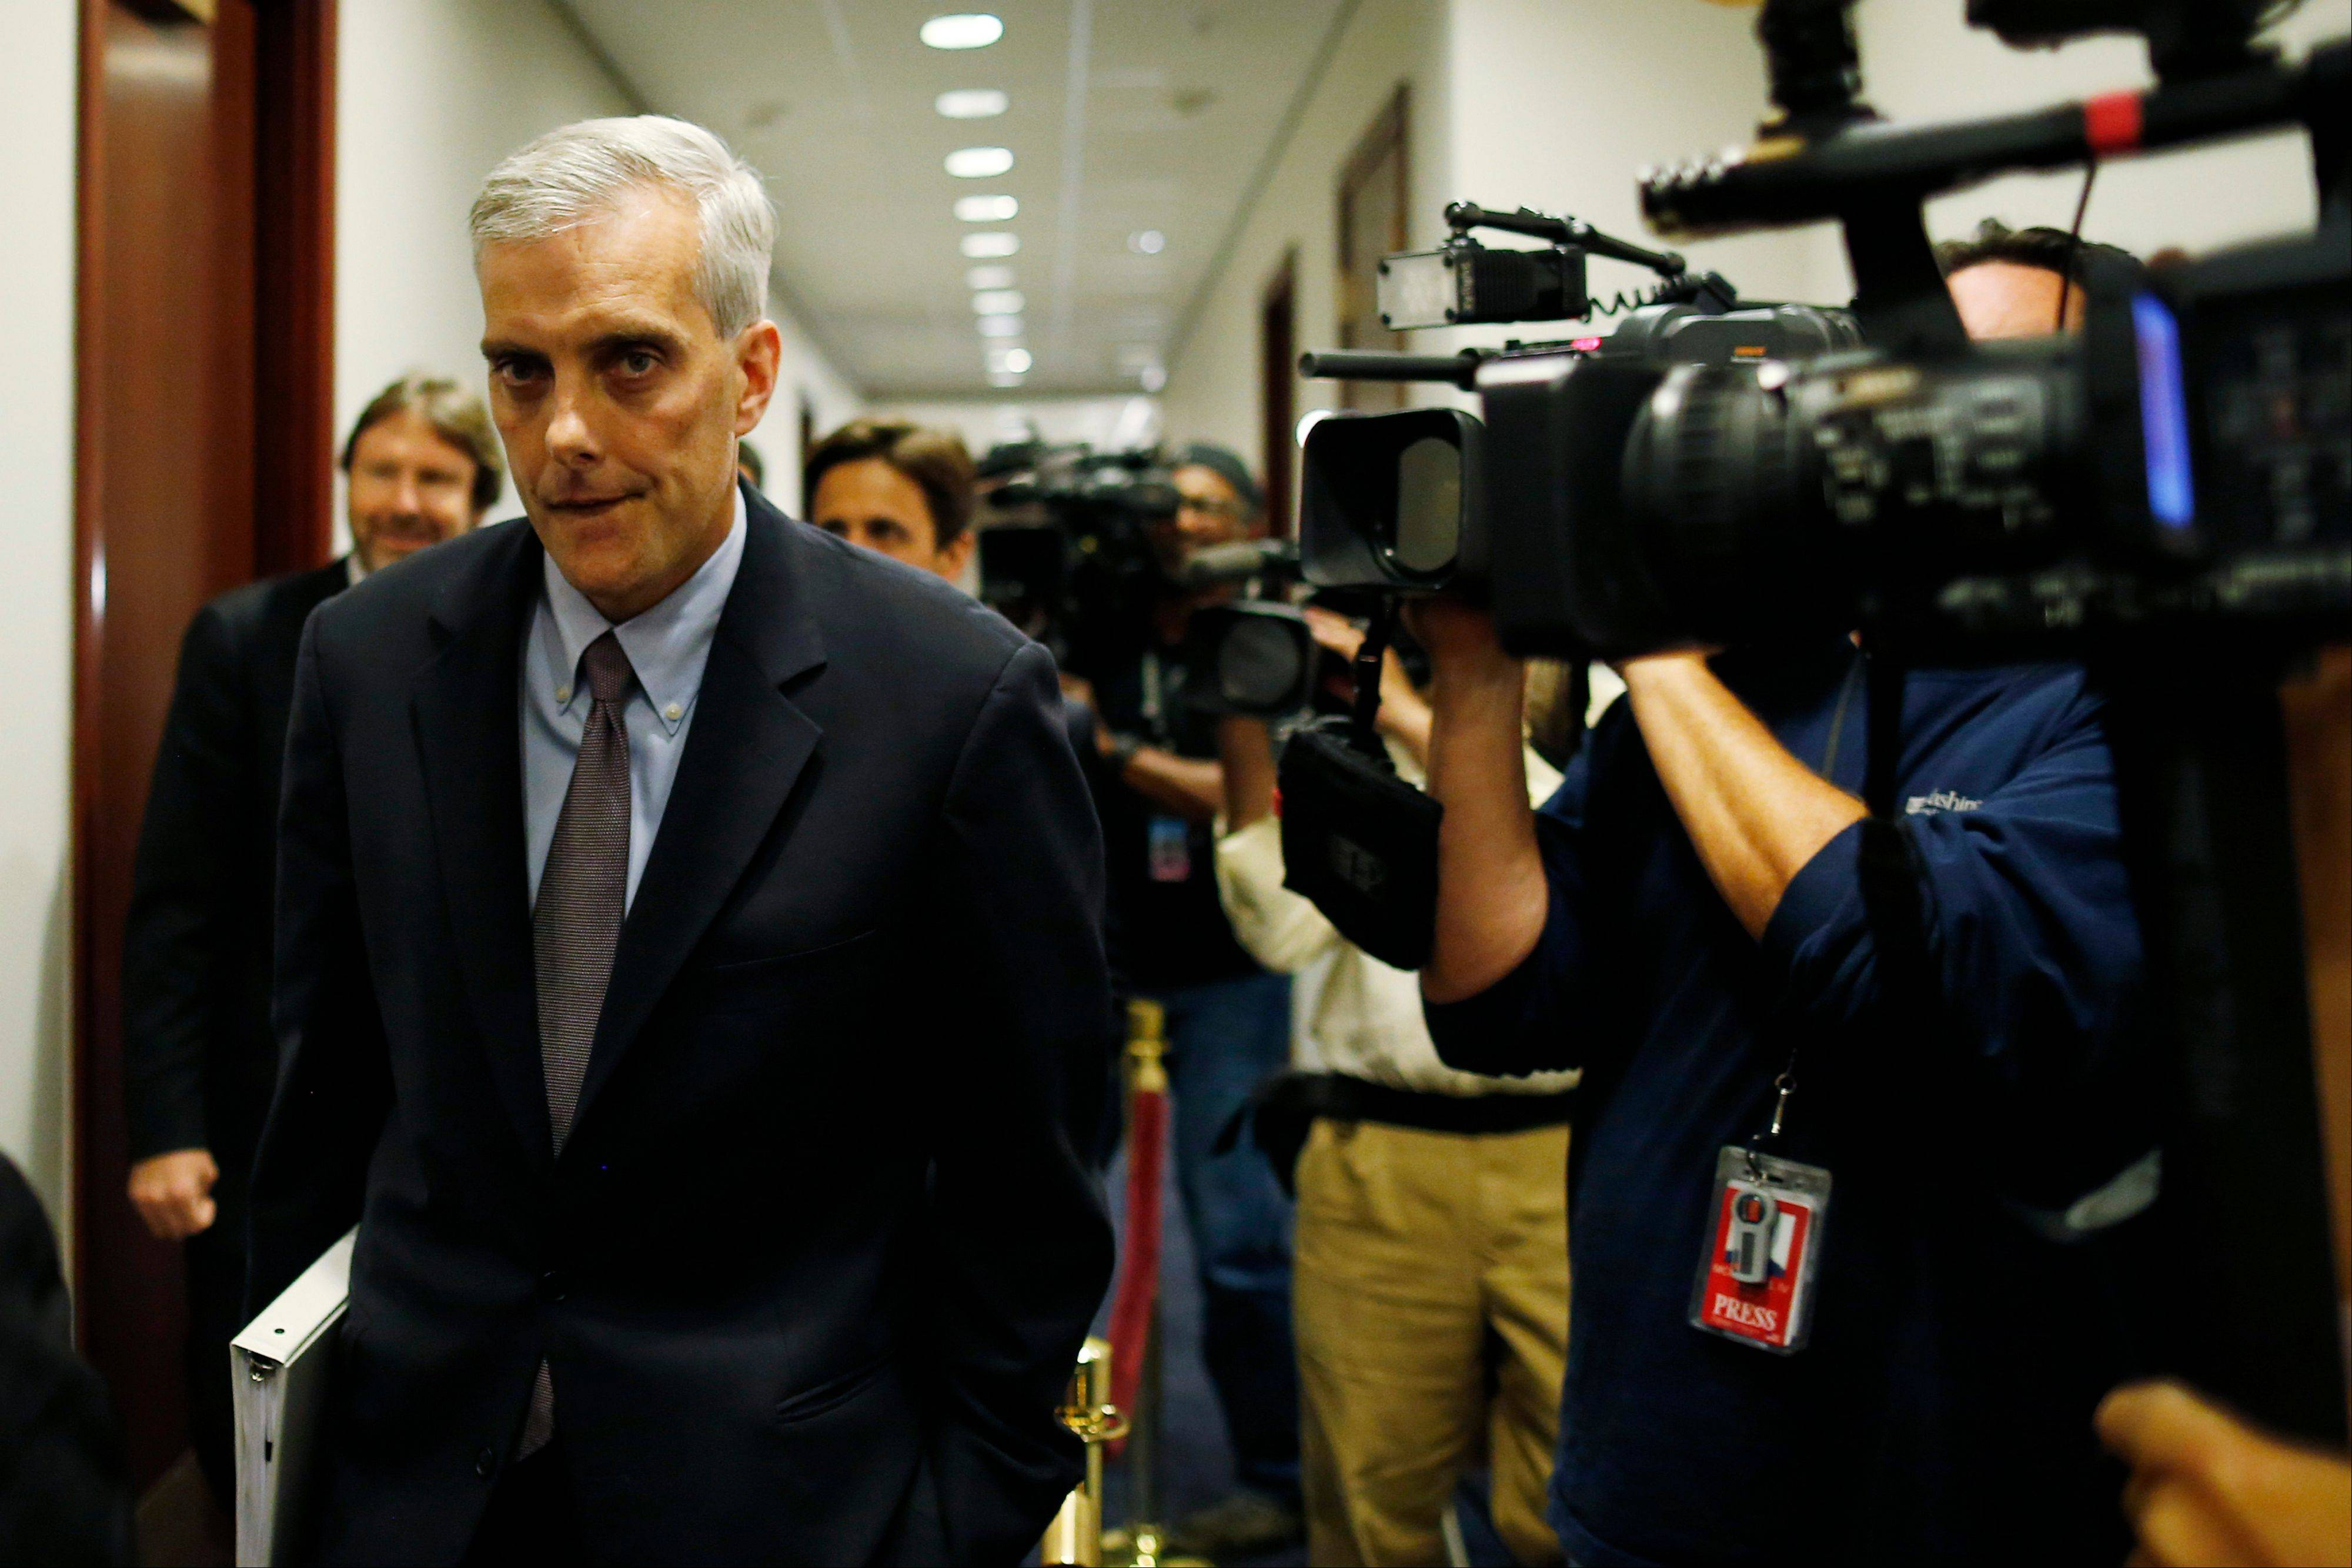 White House Chief of Staff Denis McDonough walks past reporters as he arrives to meet with the House Democratic Caucus regarding the looming government shutdown on Capitol Hill in Washington, Wednesday.